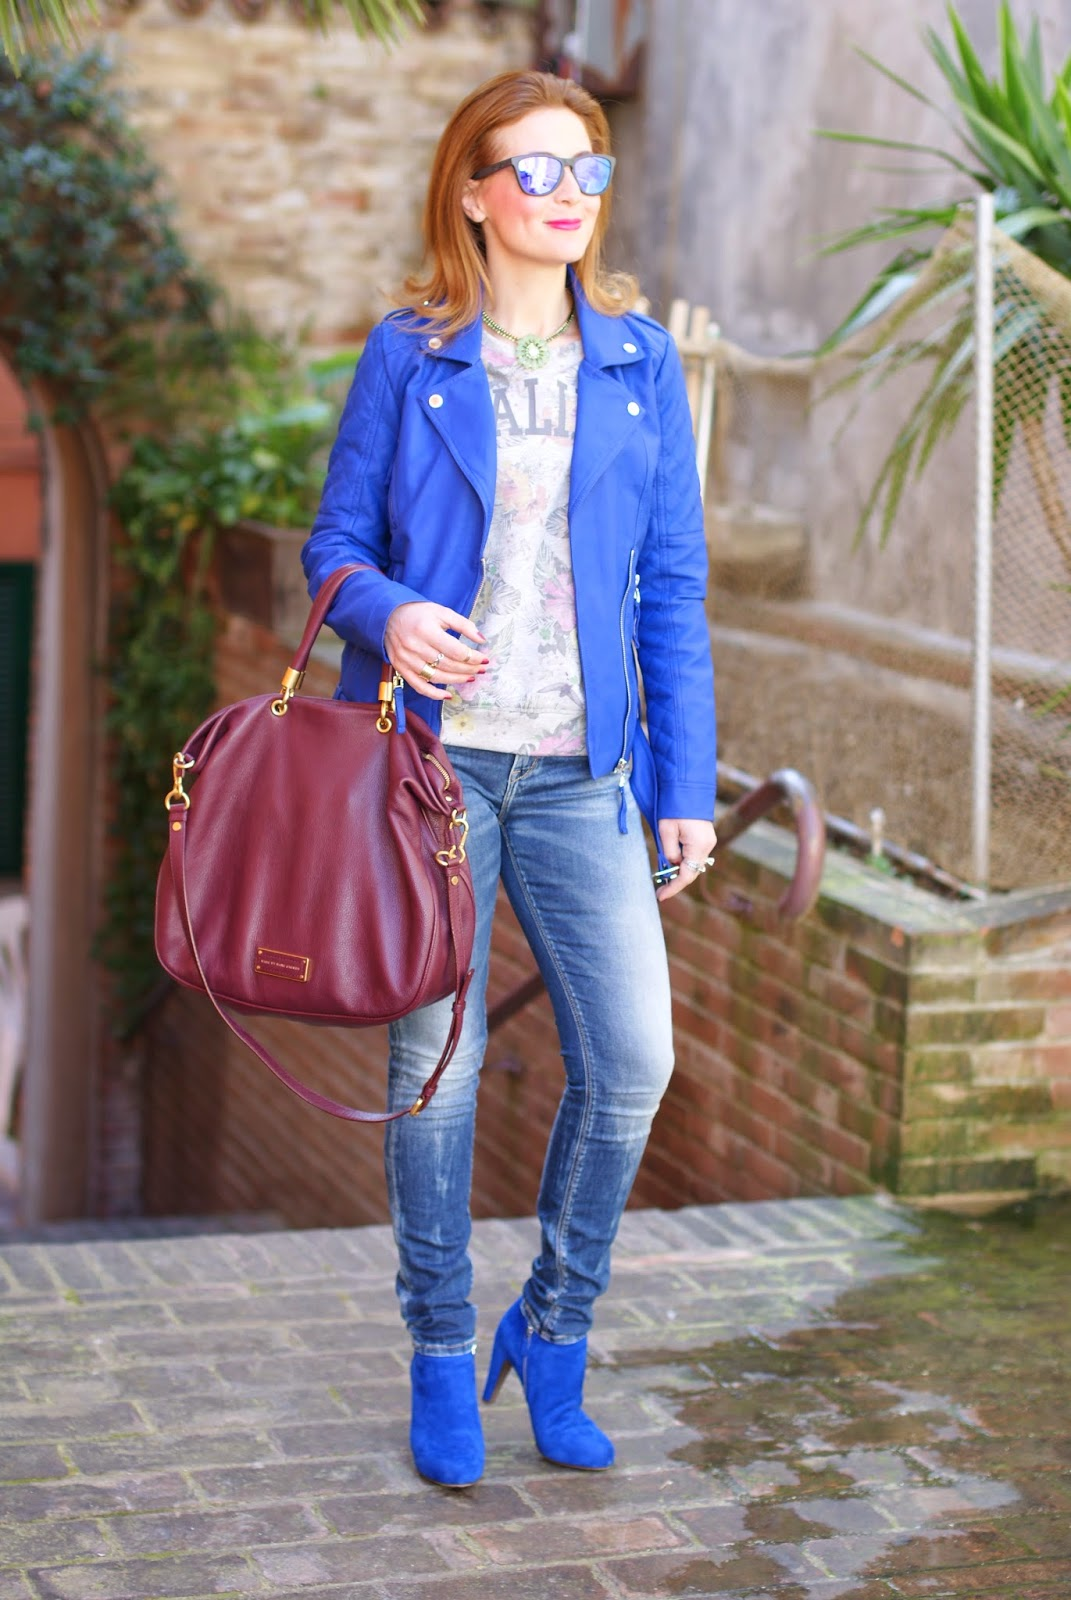 Morgan blue biker jacket, Sodini bijoux collana, See by Chloé blue ankle boots, Fashion and Cookies, fashion blogger